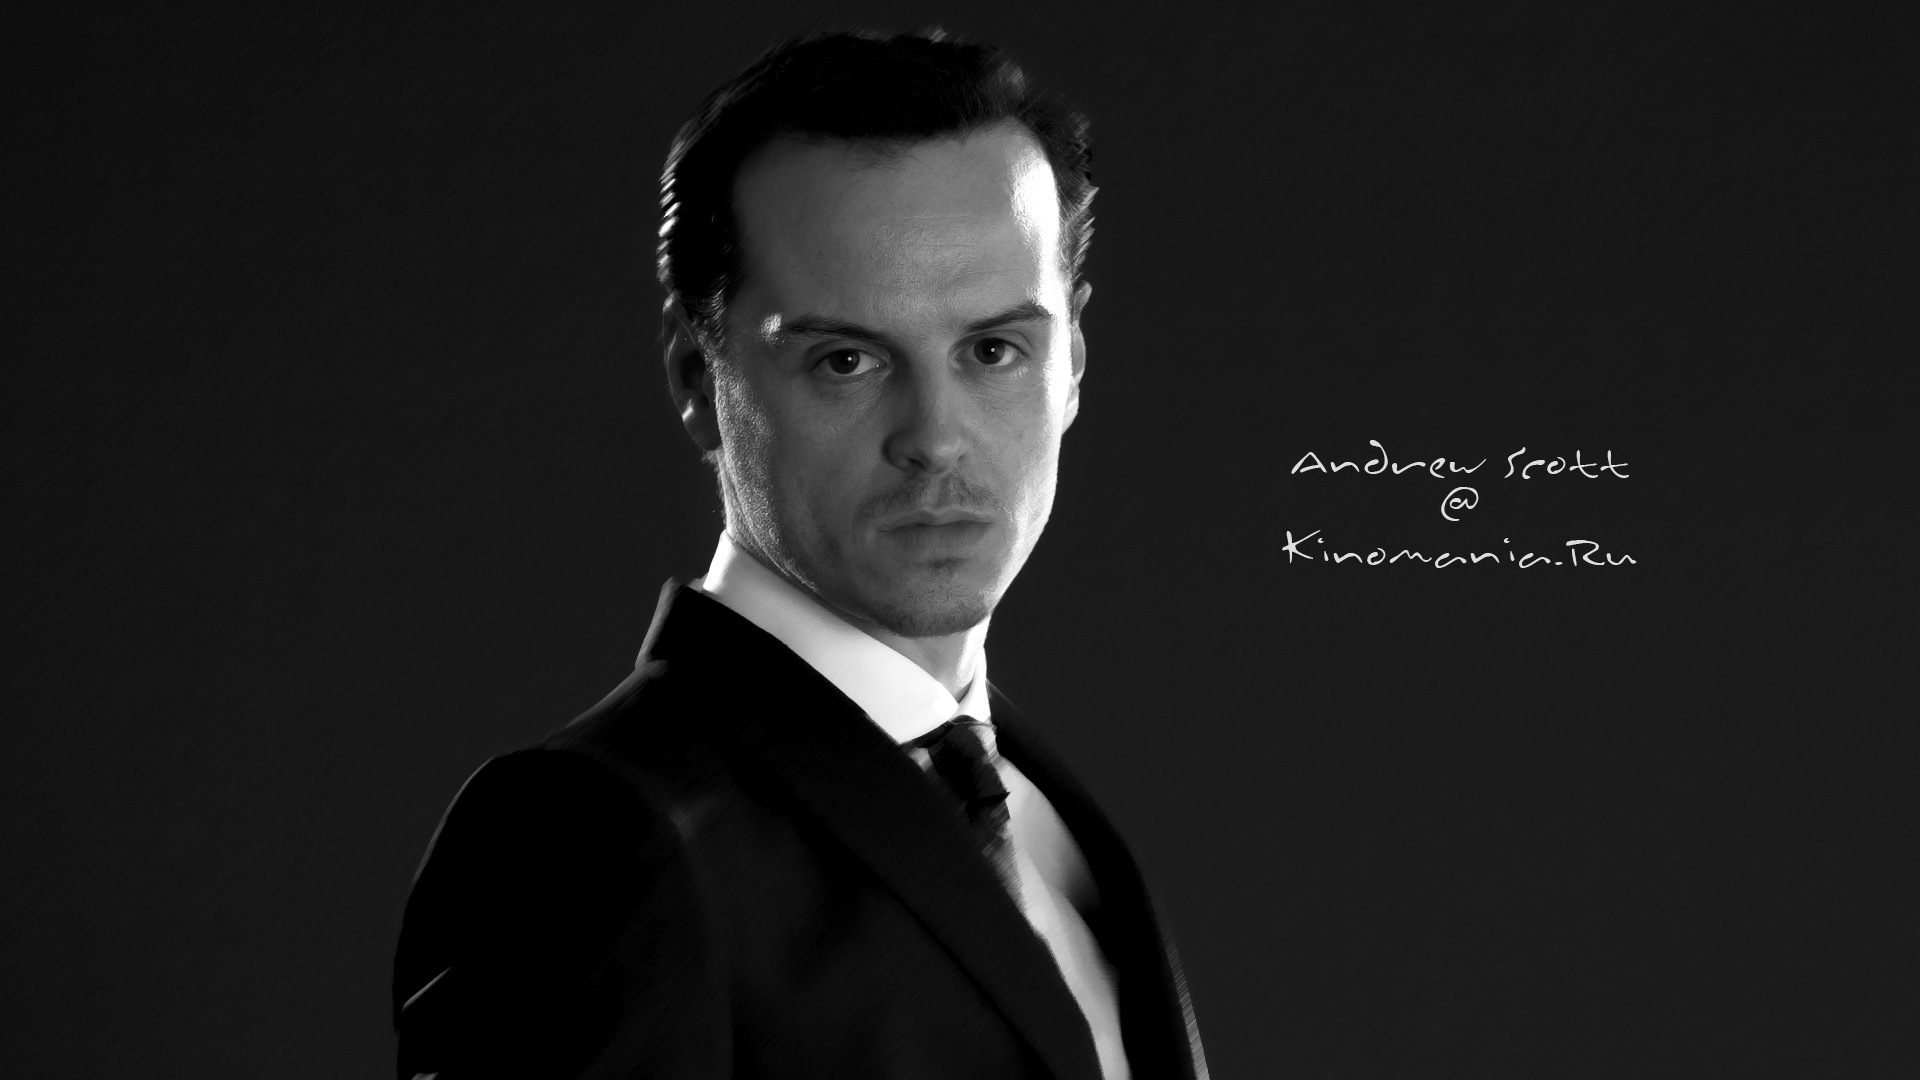 Sherlock Wallpaper Quotes Andrew Scott Wallpapers High Resolution And Quality Download